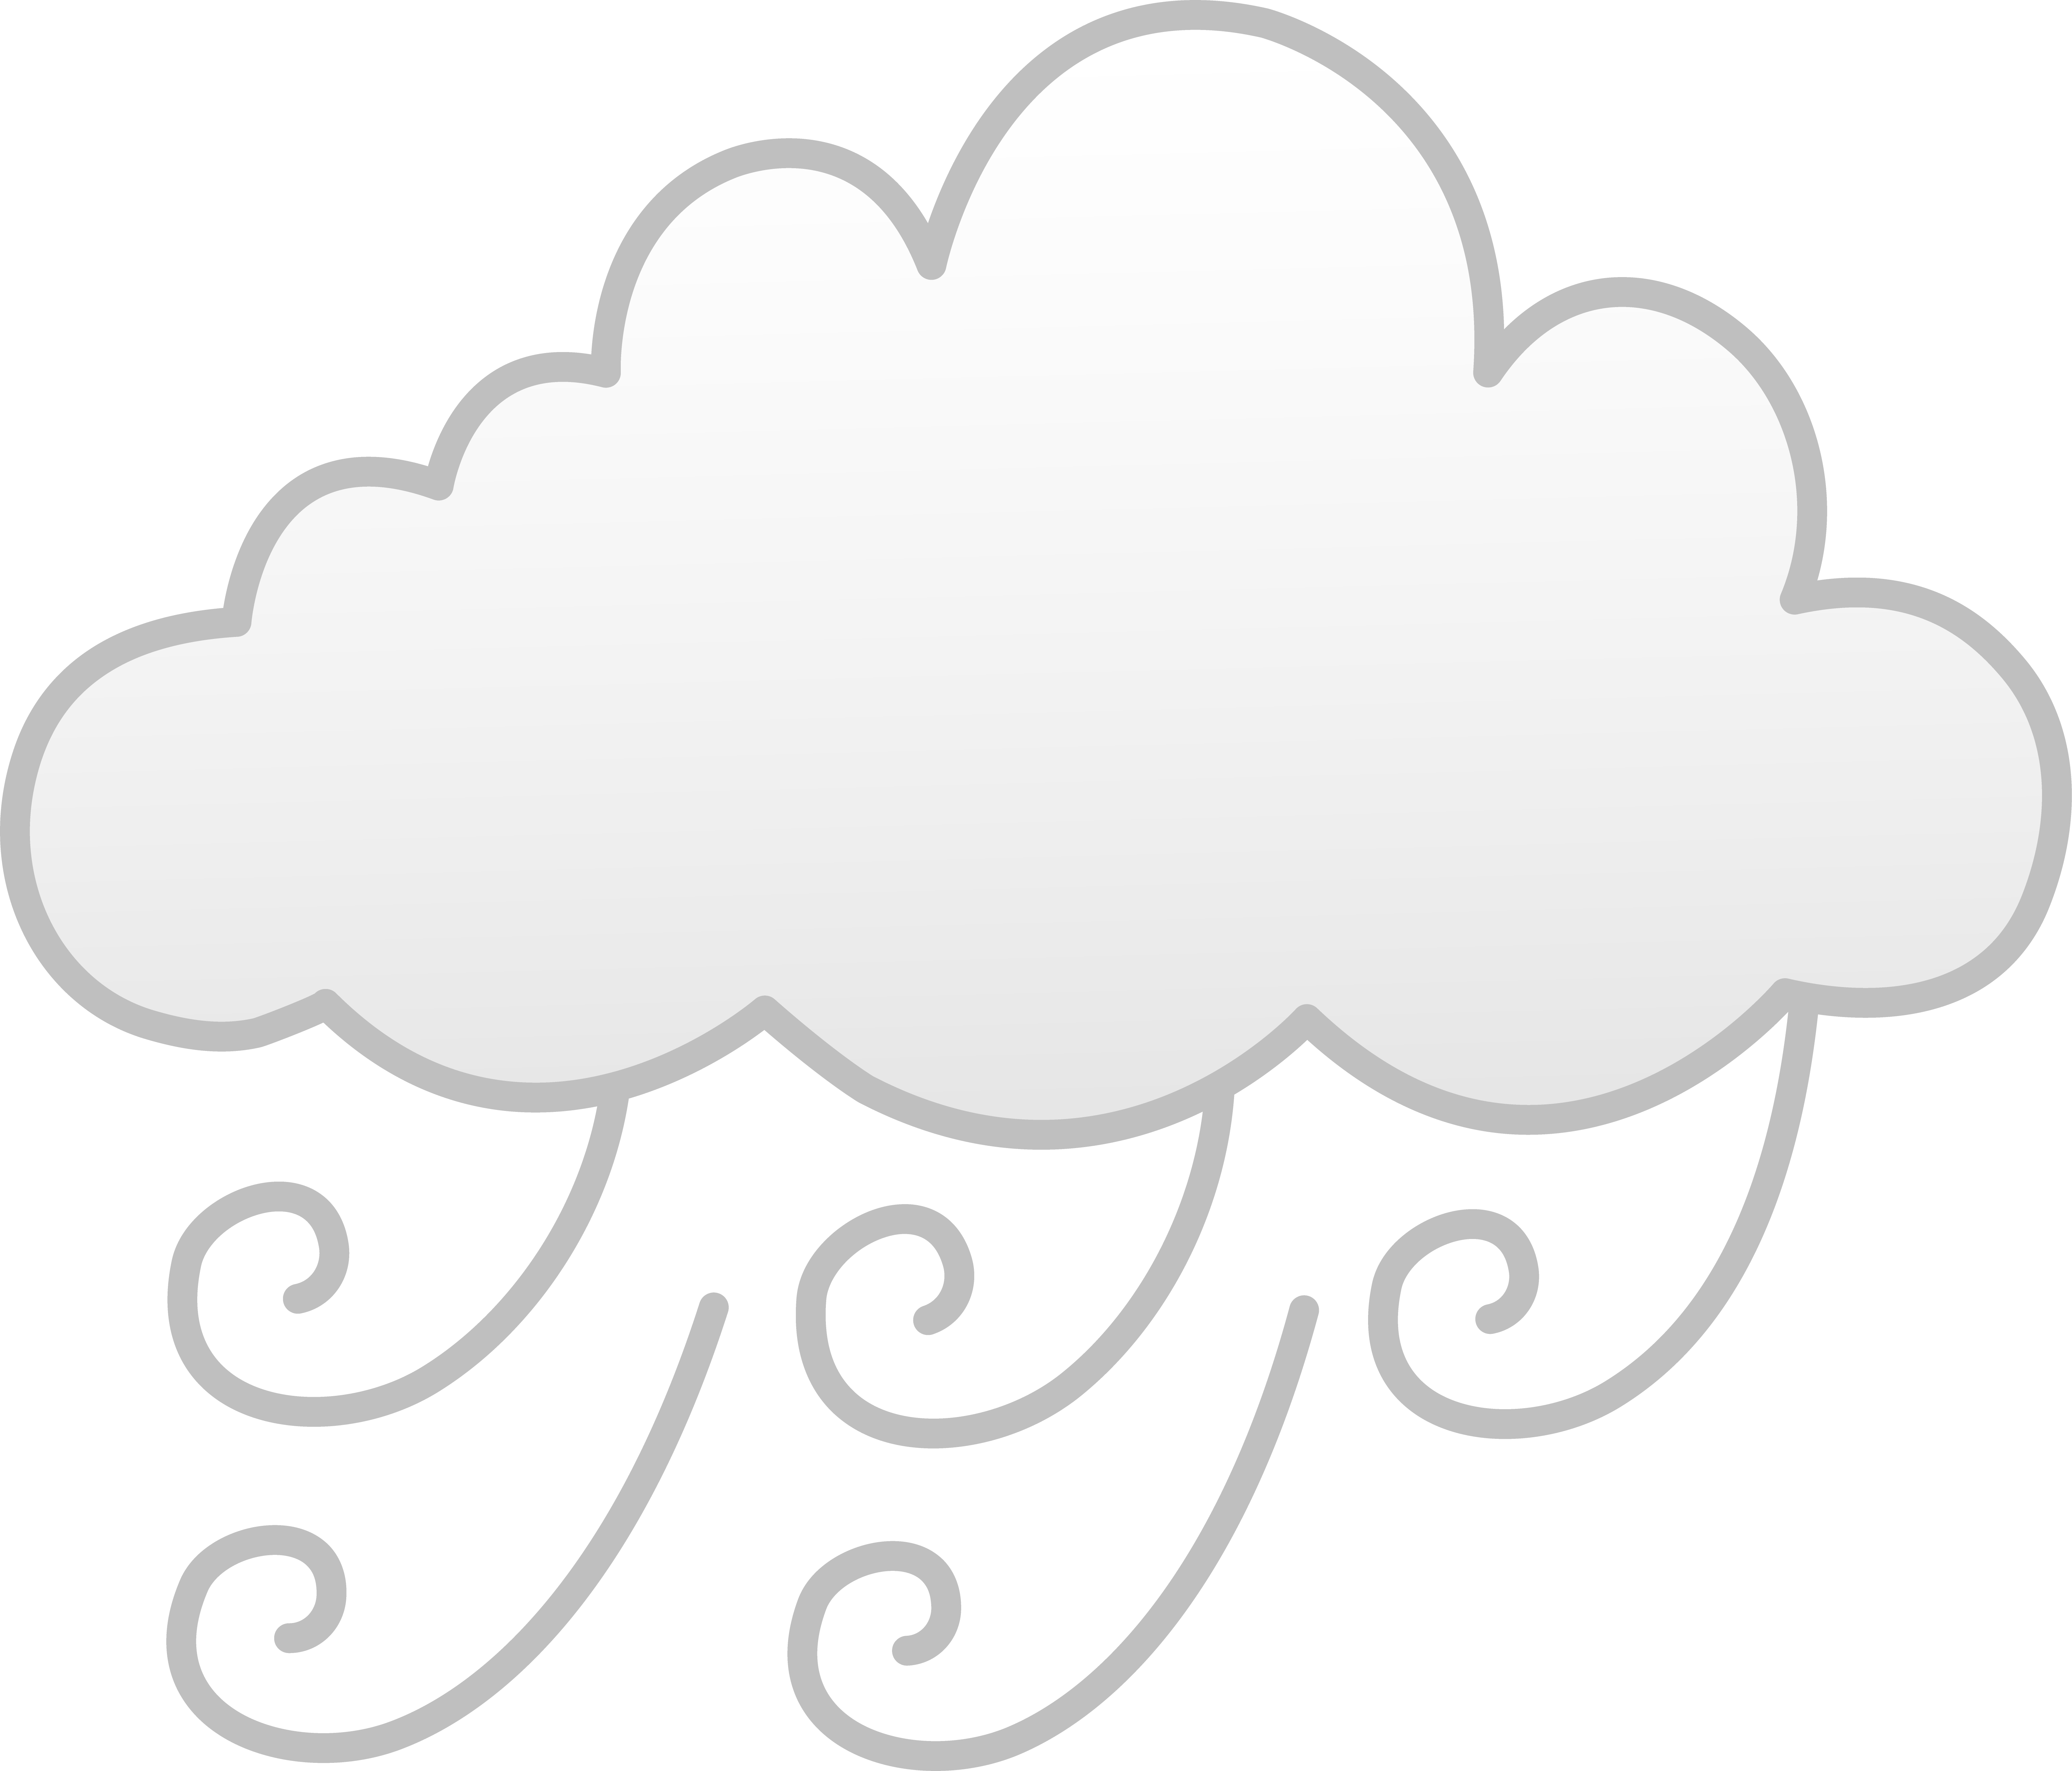 graphic royalty free download Fog clipart weather pattern. Windy or foggy free.